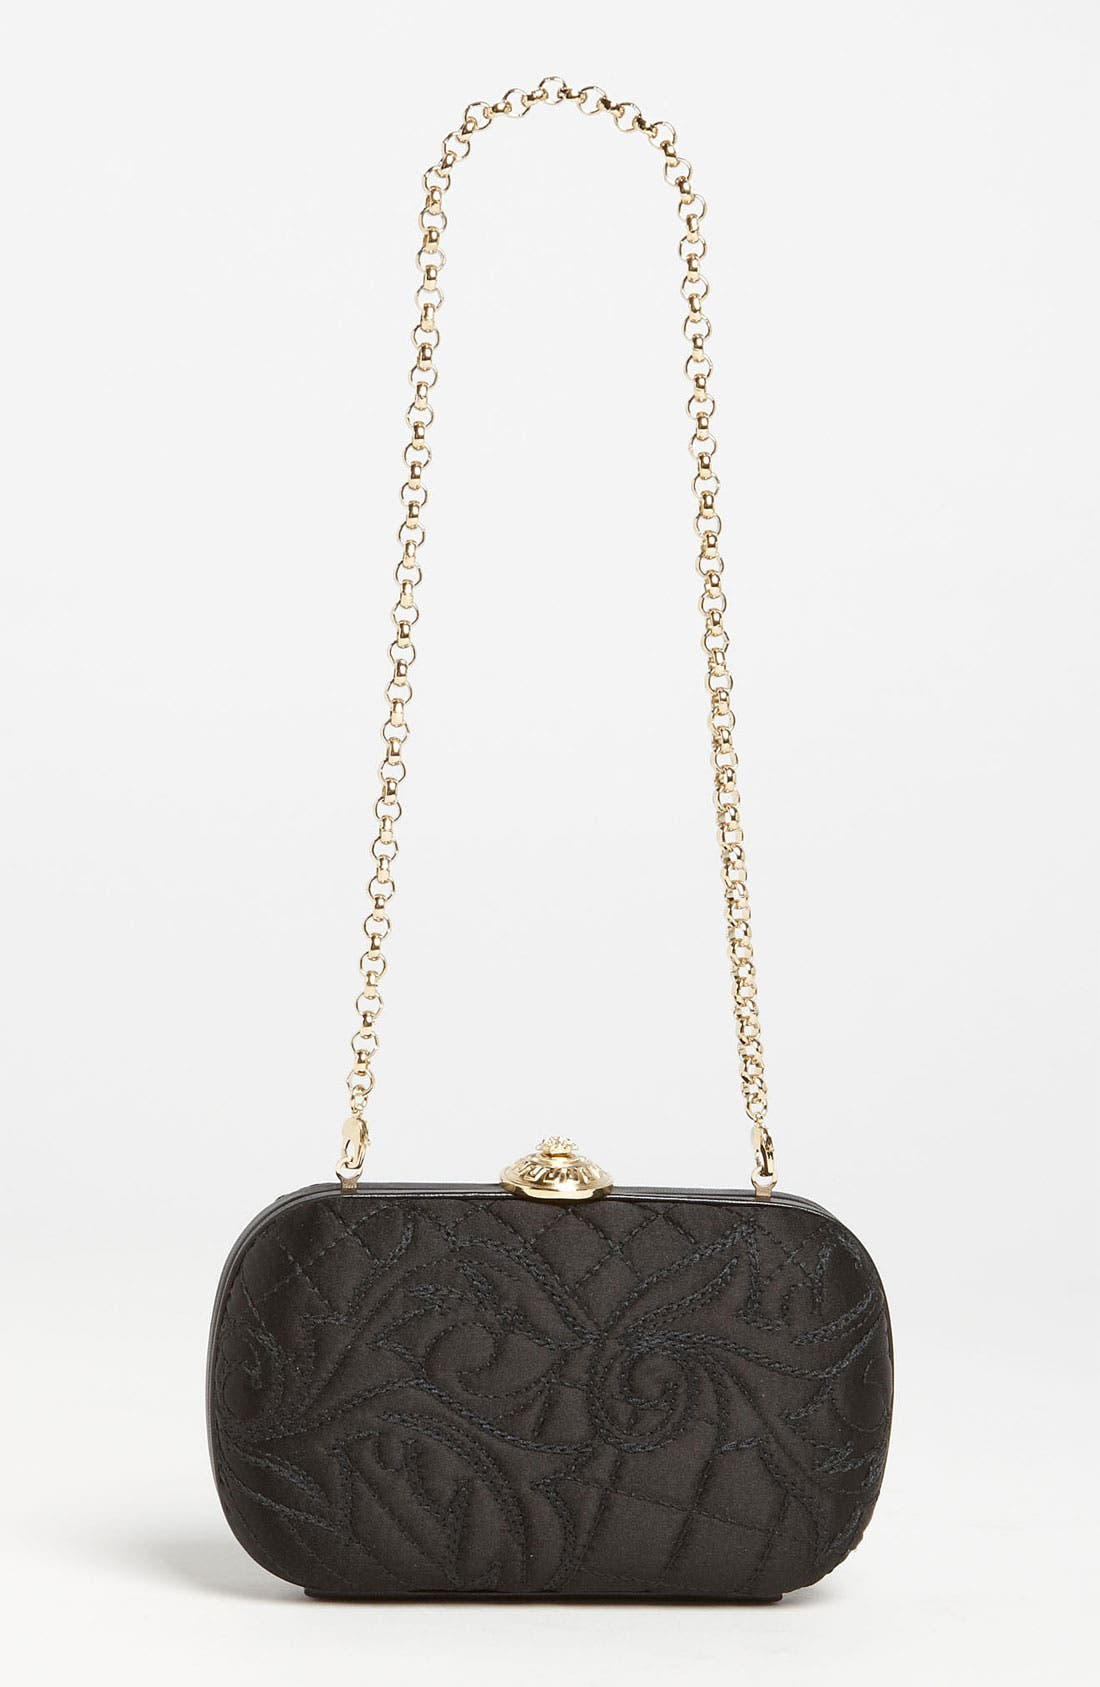 Main Image - Versace 'Linea' Box Clutch